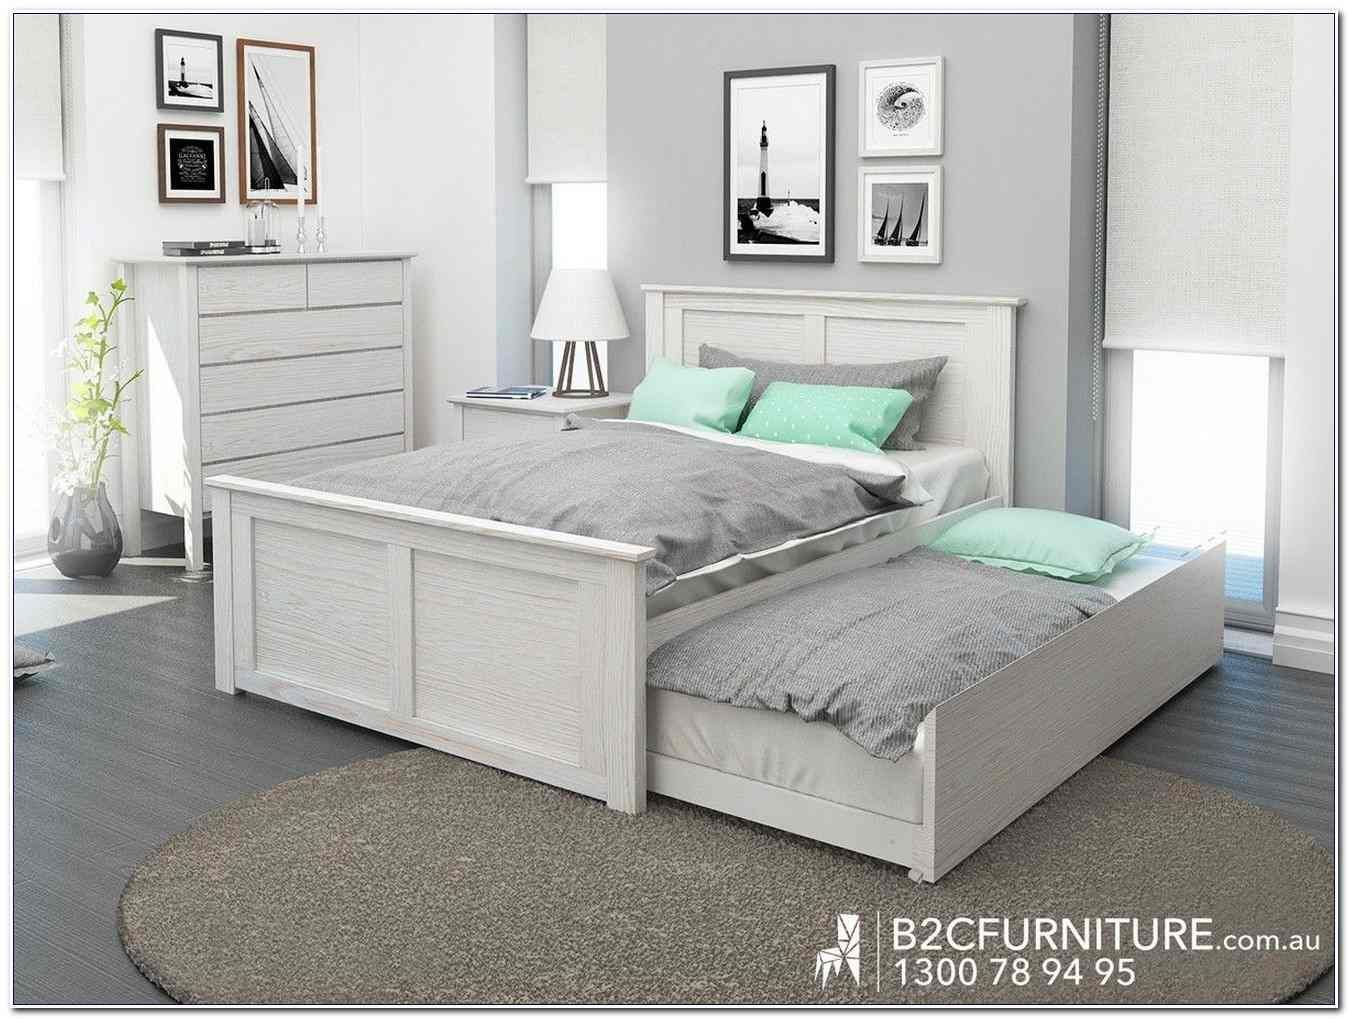 Espresso Full Size Bed With Twin Size Trundle Bed Bedroom Lowest With Proportions 1200 X 800 Doubl Bedroom